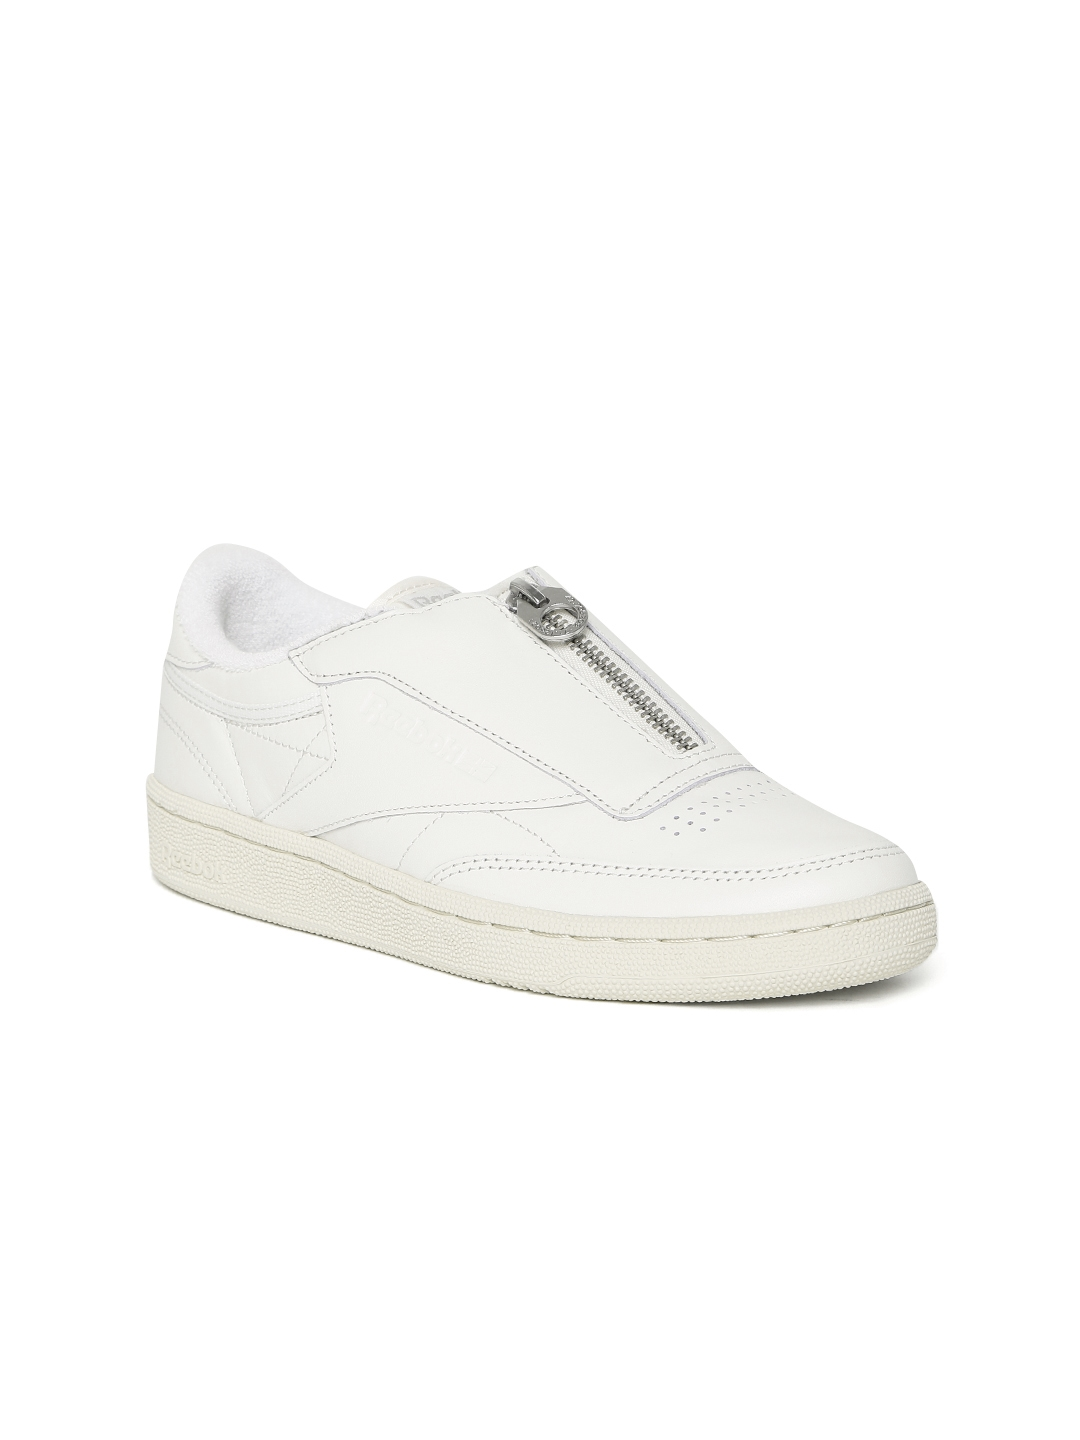 df3ea2d42855 Reebok Classic Women Off-White Club C 85 Zip Leather Slip-On Sneakers